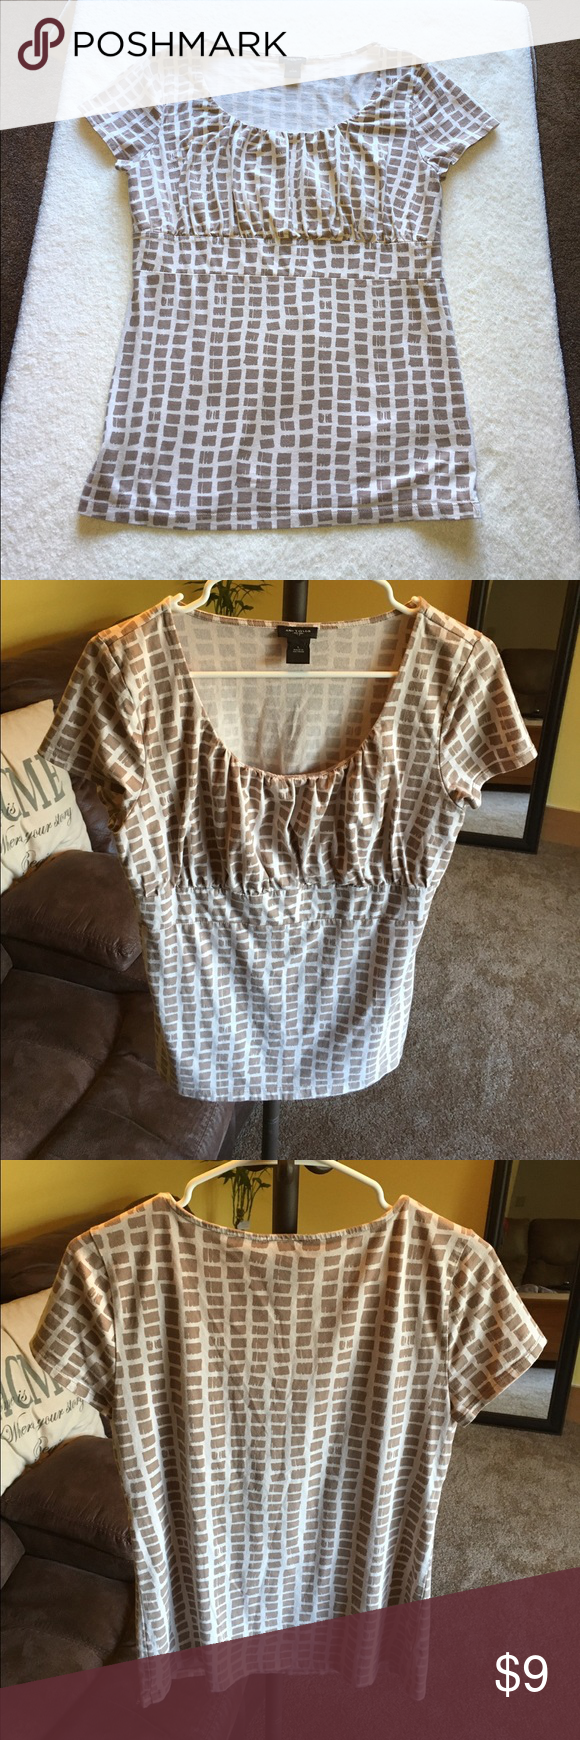 Ann Taylor pattern top Ann Taylor short sleeve top with beige and cream square pattern. Slightly pleats around the neckline. Size large. Material is 95% cotton and 5% spandex so it's slightly stretchy. Ann Taylor Tops Blouses